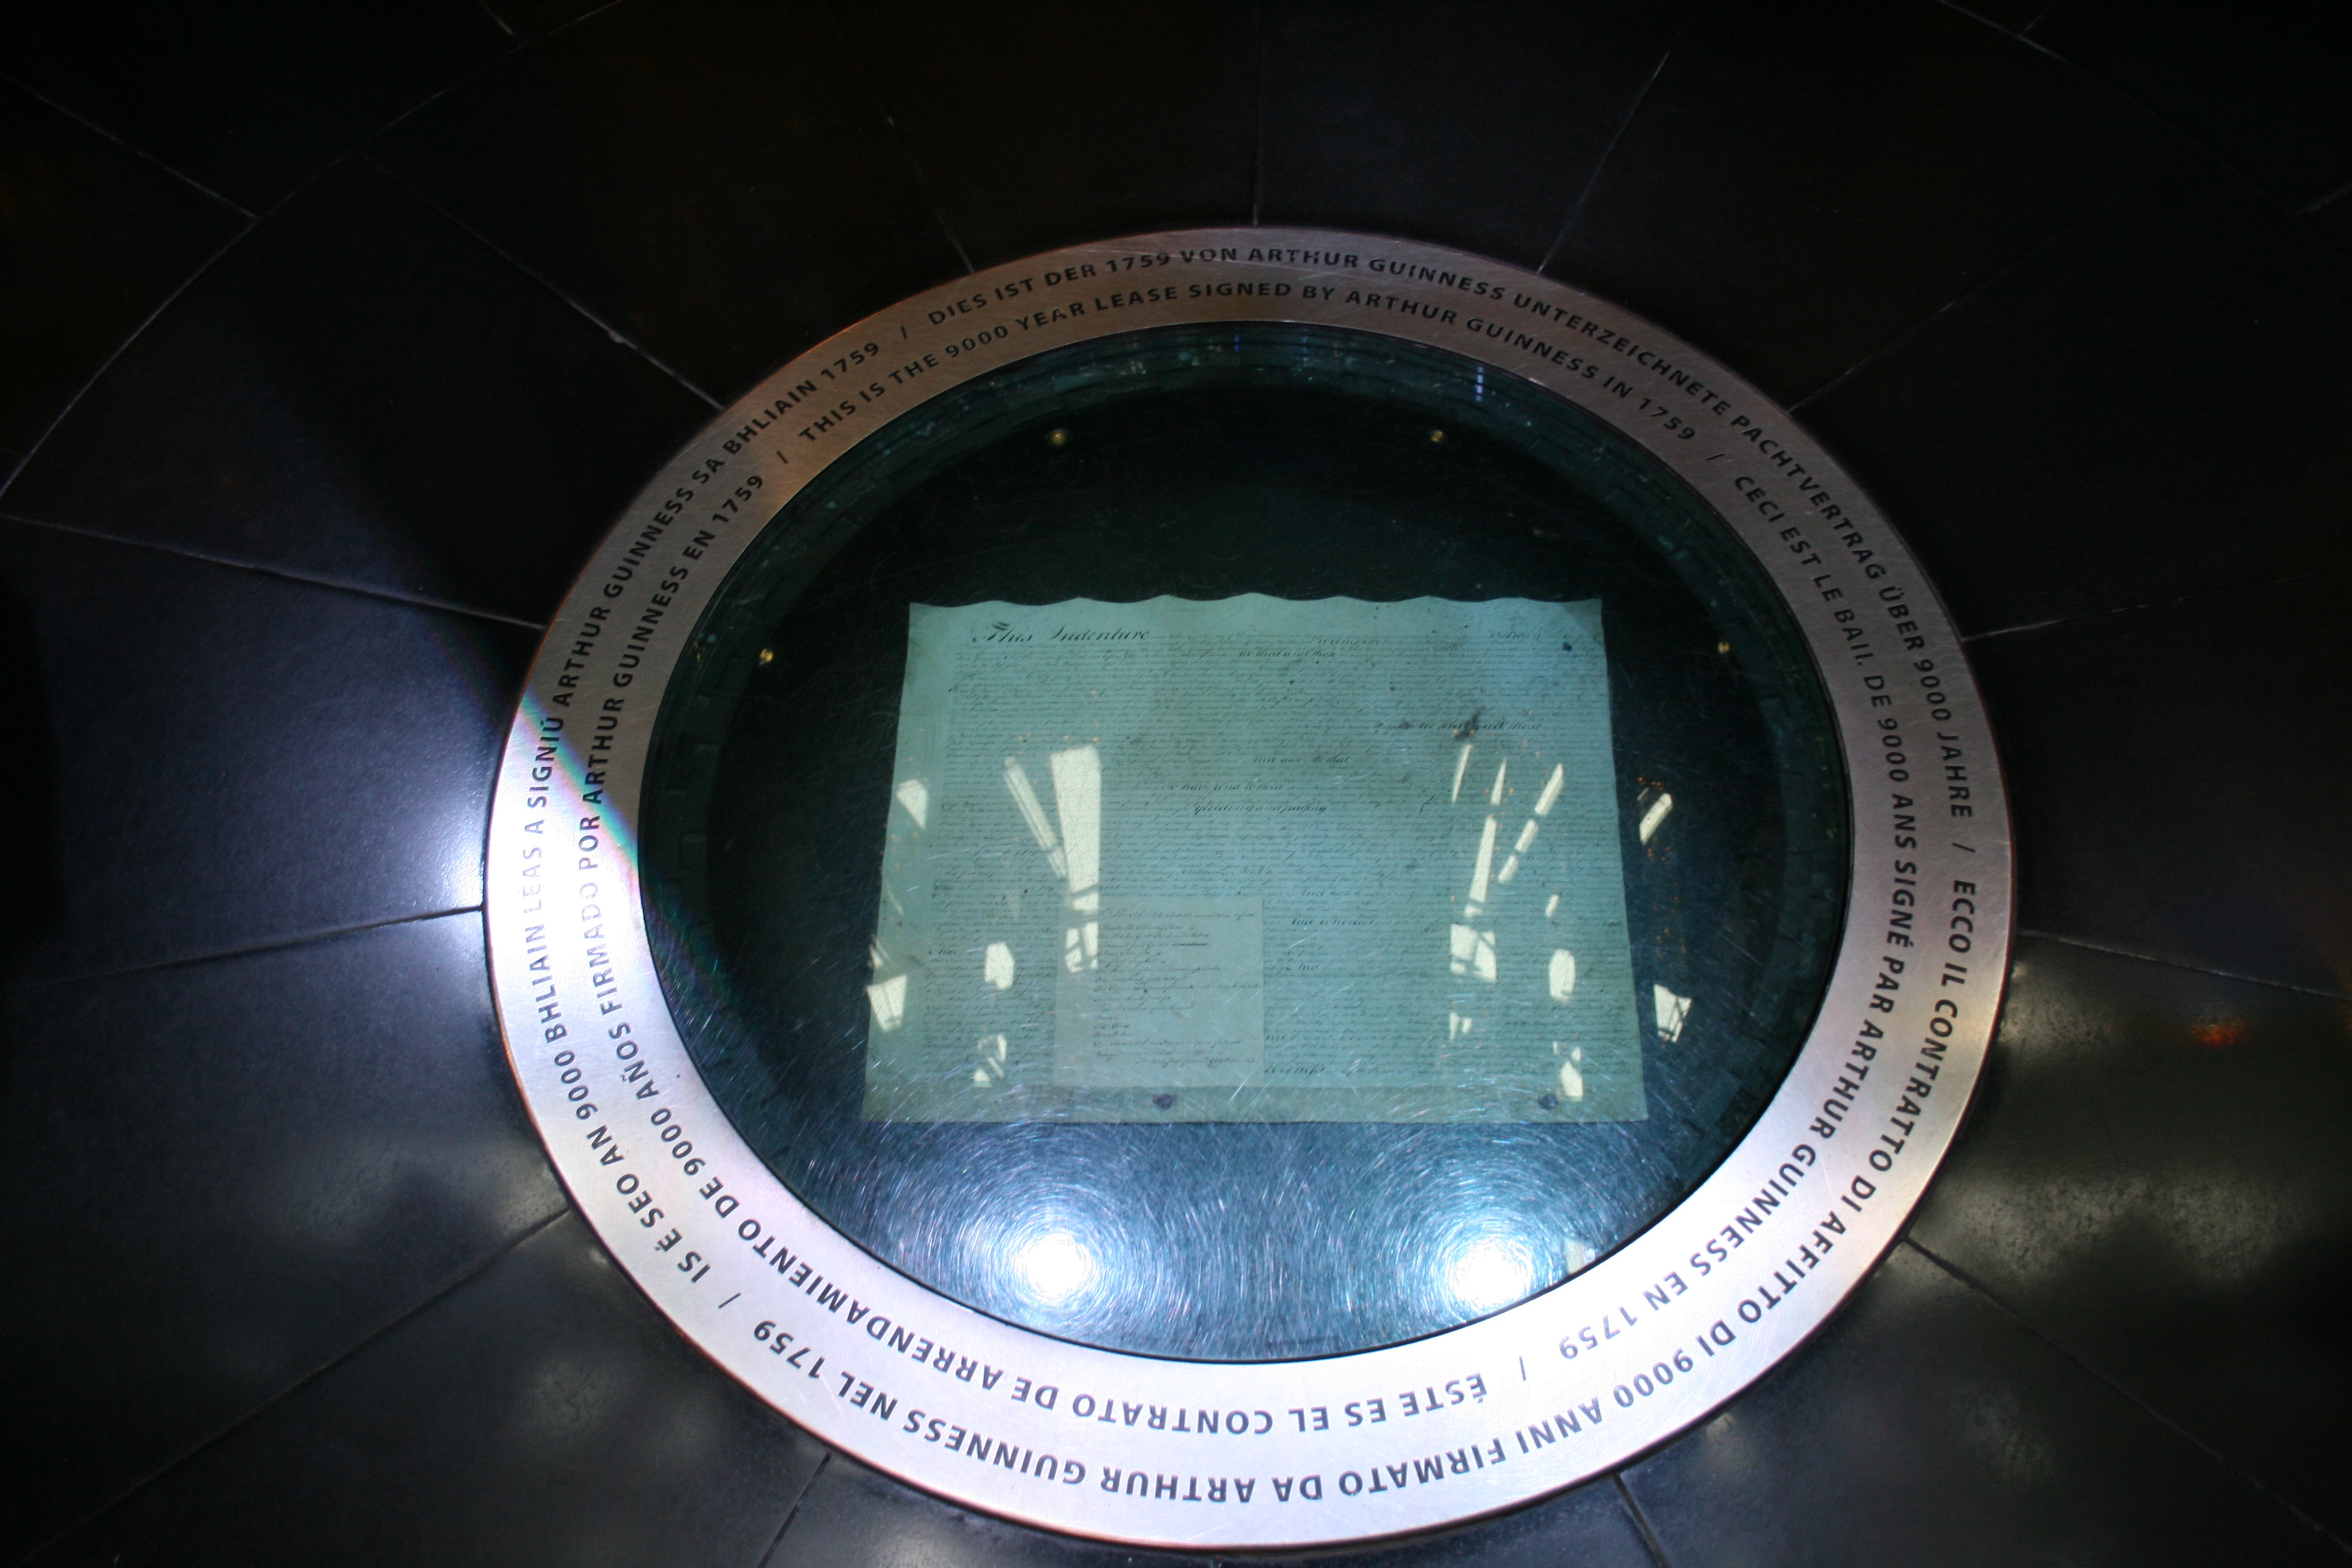 Guinness 9,000 year lease